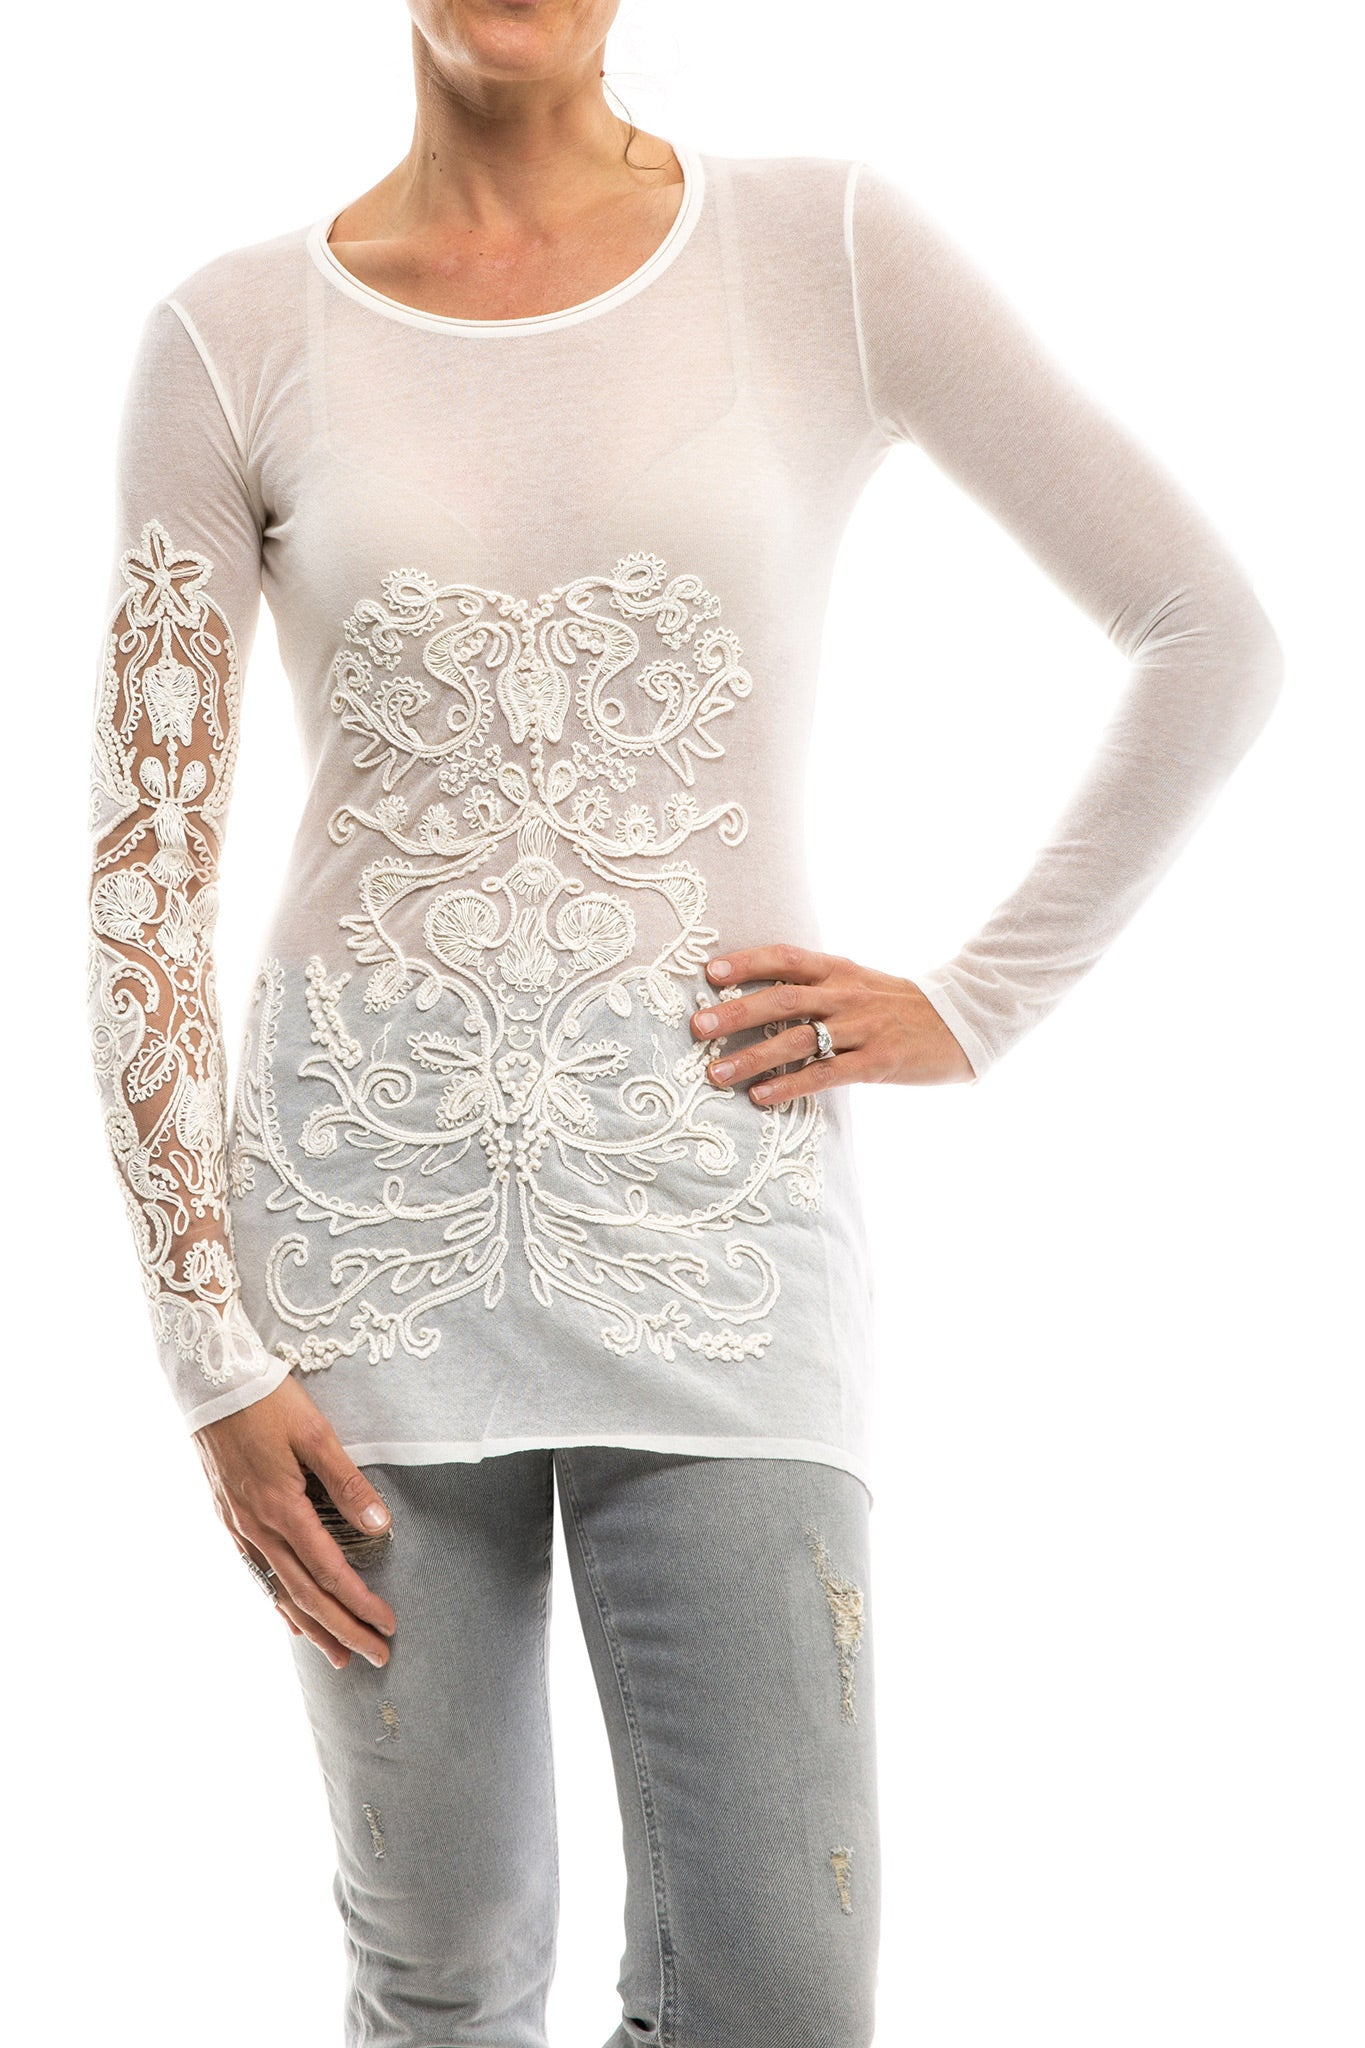 Catalina Cotton Chiffon Top W/ Embroidered Sleeve In Milk (3554832220253)